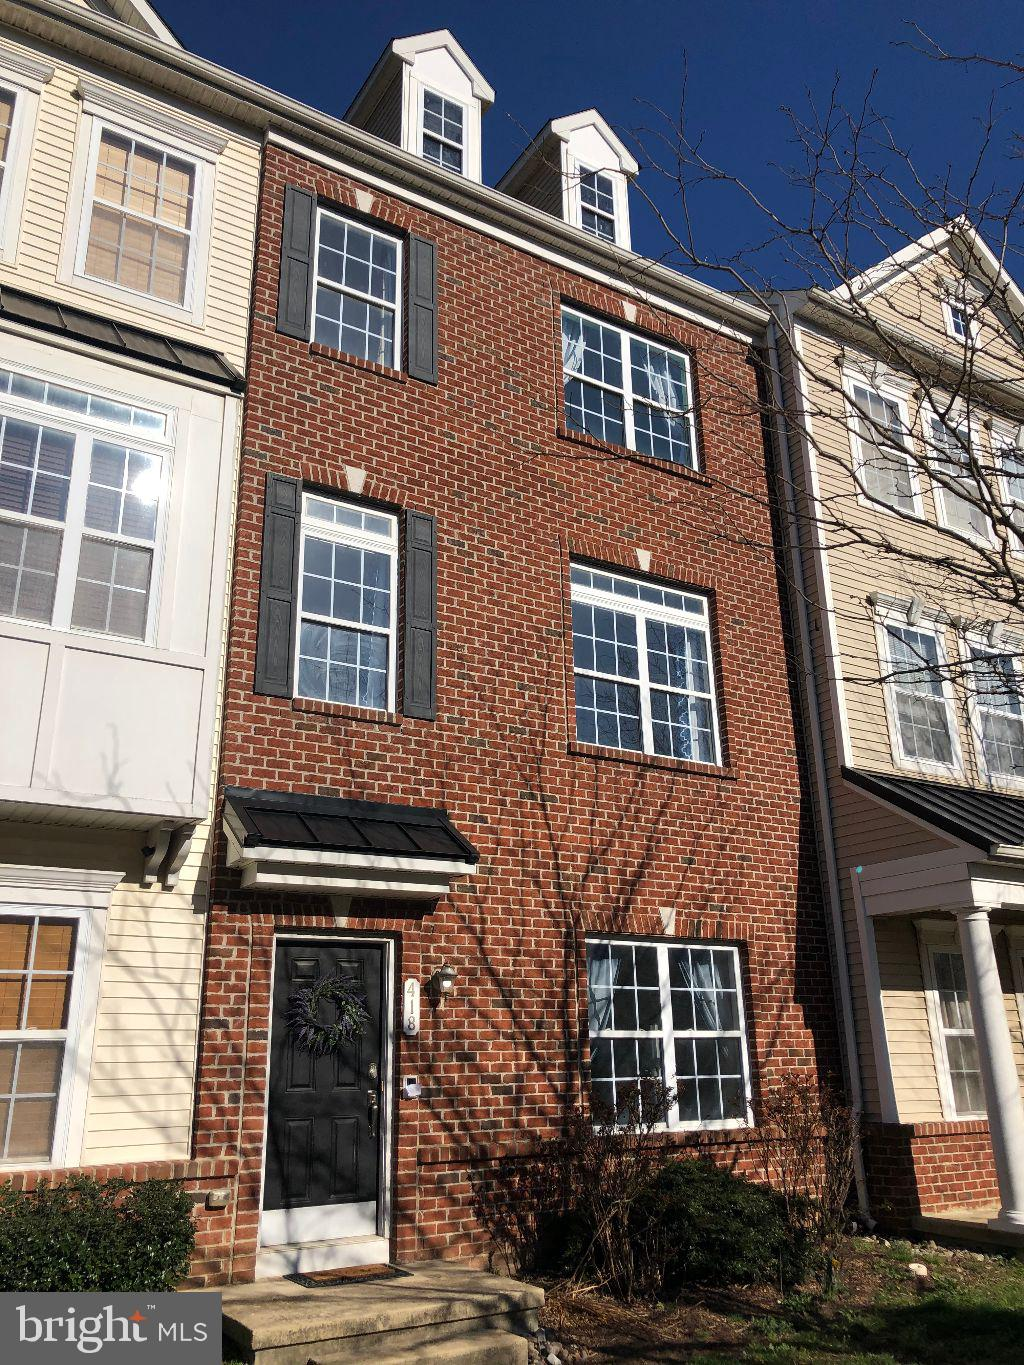 Superb, spacious brick front townhome located in the heart of Middletown and the ever popular Appoquinimink School District!!  Entrance level includes bonus room (perfect for home office or gym), oversized storage room and rough in for bathroom.  Spacious kitchen complete with island, pot rack, upgraded cabinets, breakfast bar, separate eating area, and recessed lighting, great room with loads of natural light,  owners suite with walk-in closet, second floor laundry, all fresh paint and carpet, rear deck, one car garage and the list goes on!  Don't miss this gem!!